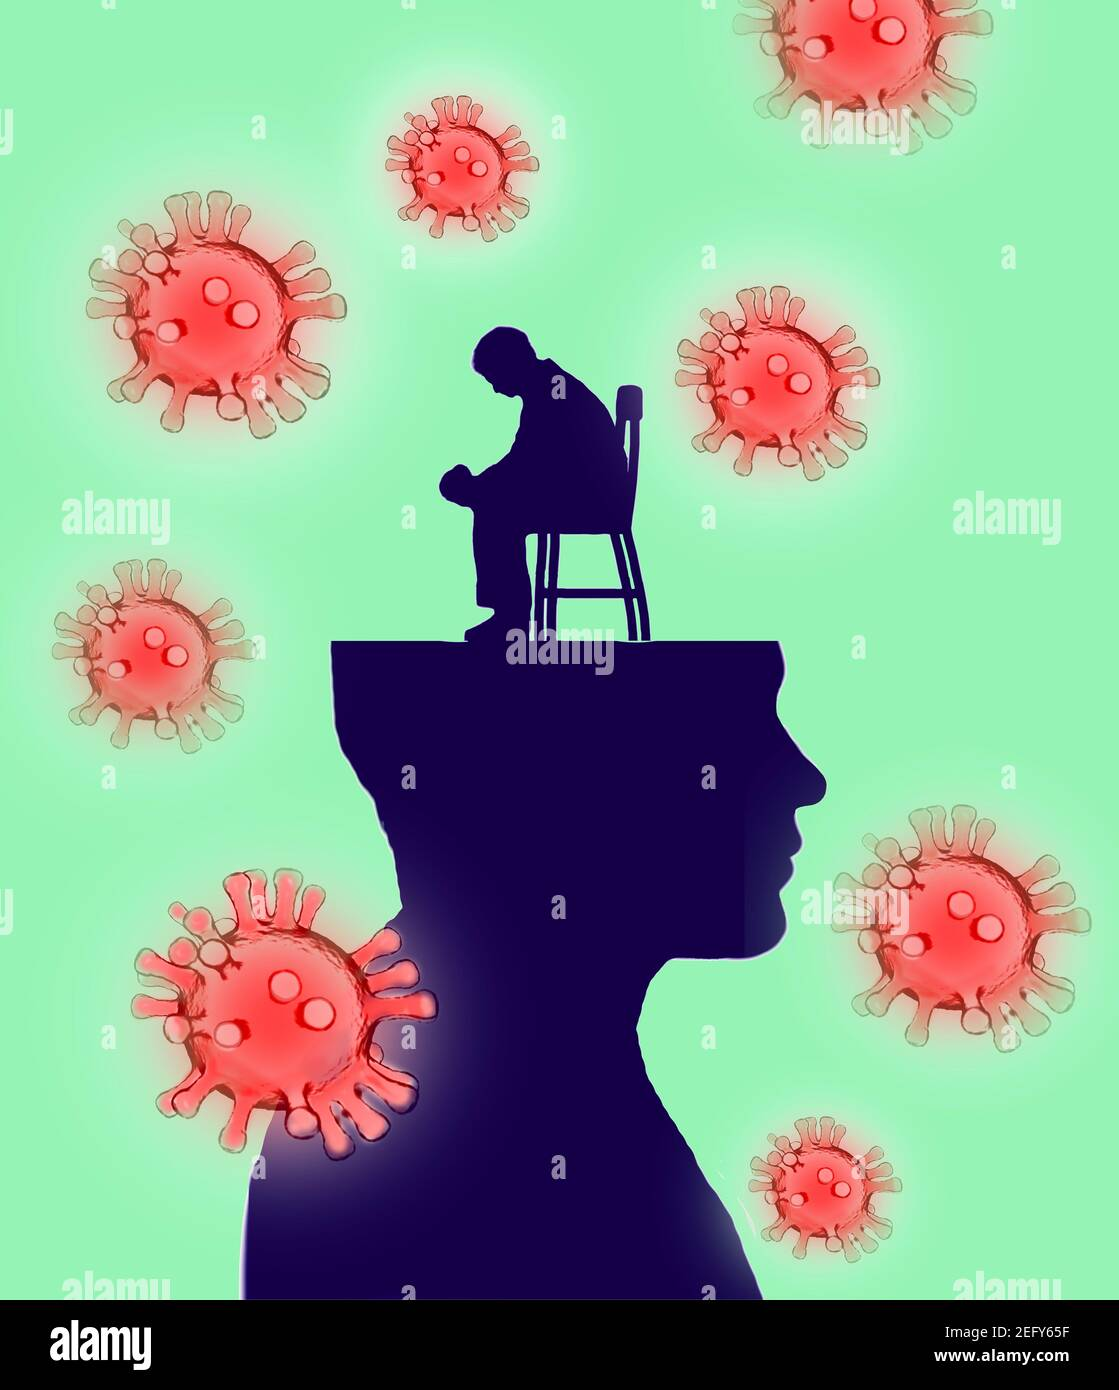 Worried man sitting on a chair on a profile head surrounded by coronavirus Stock Photo